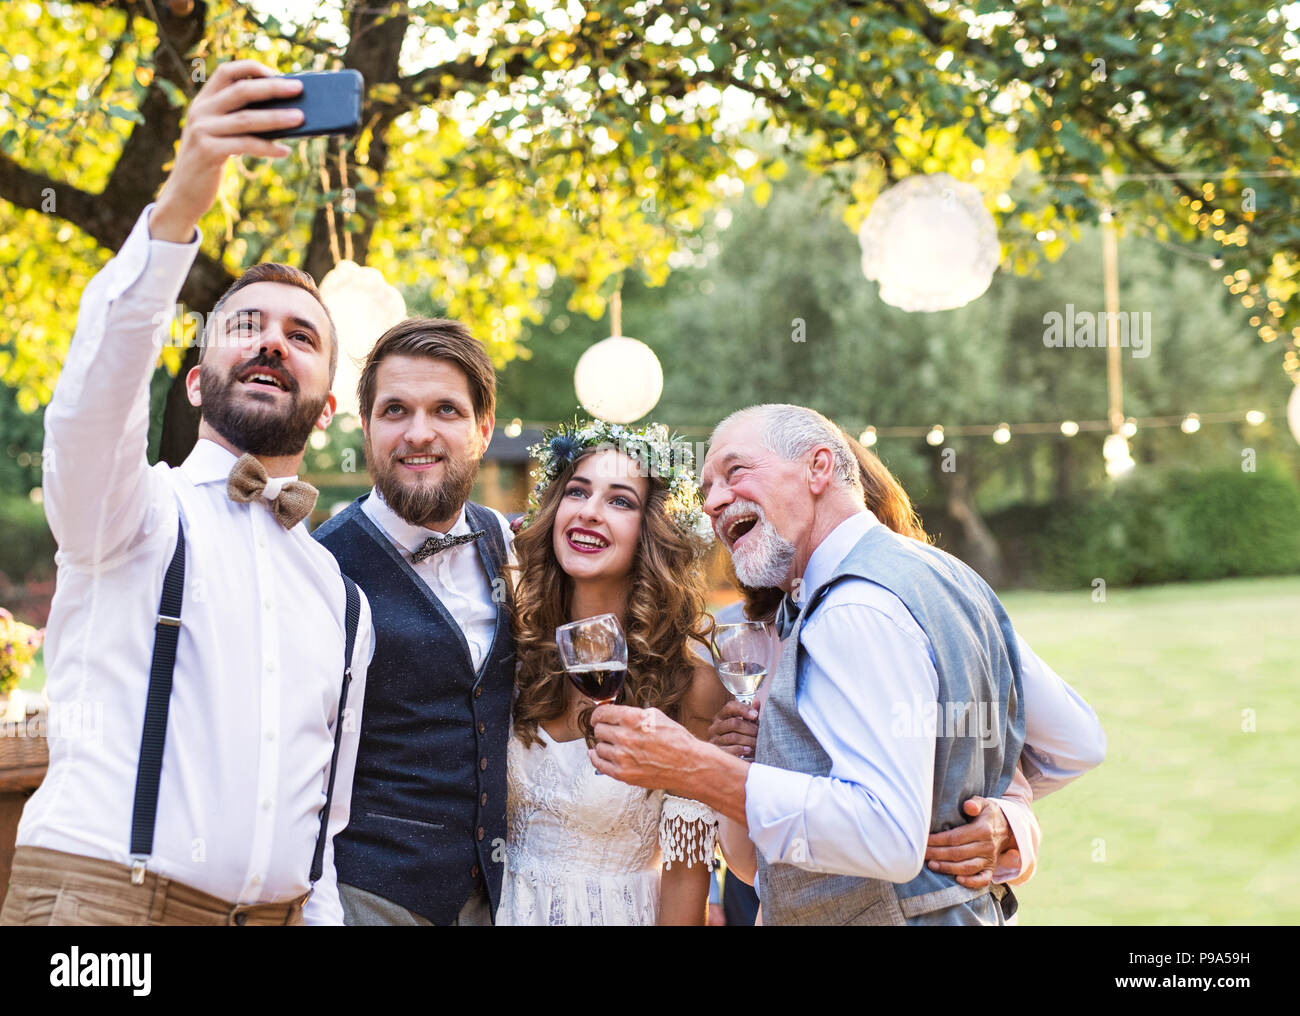 Bride, groom and guests with smartphone taking selfie outside at wedding reception. - Stock Image